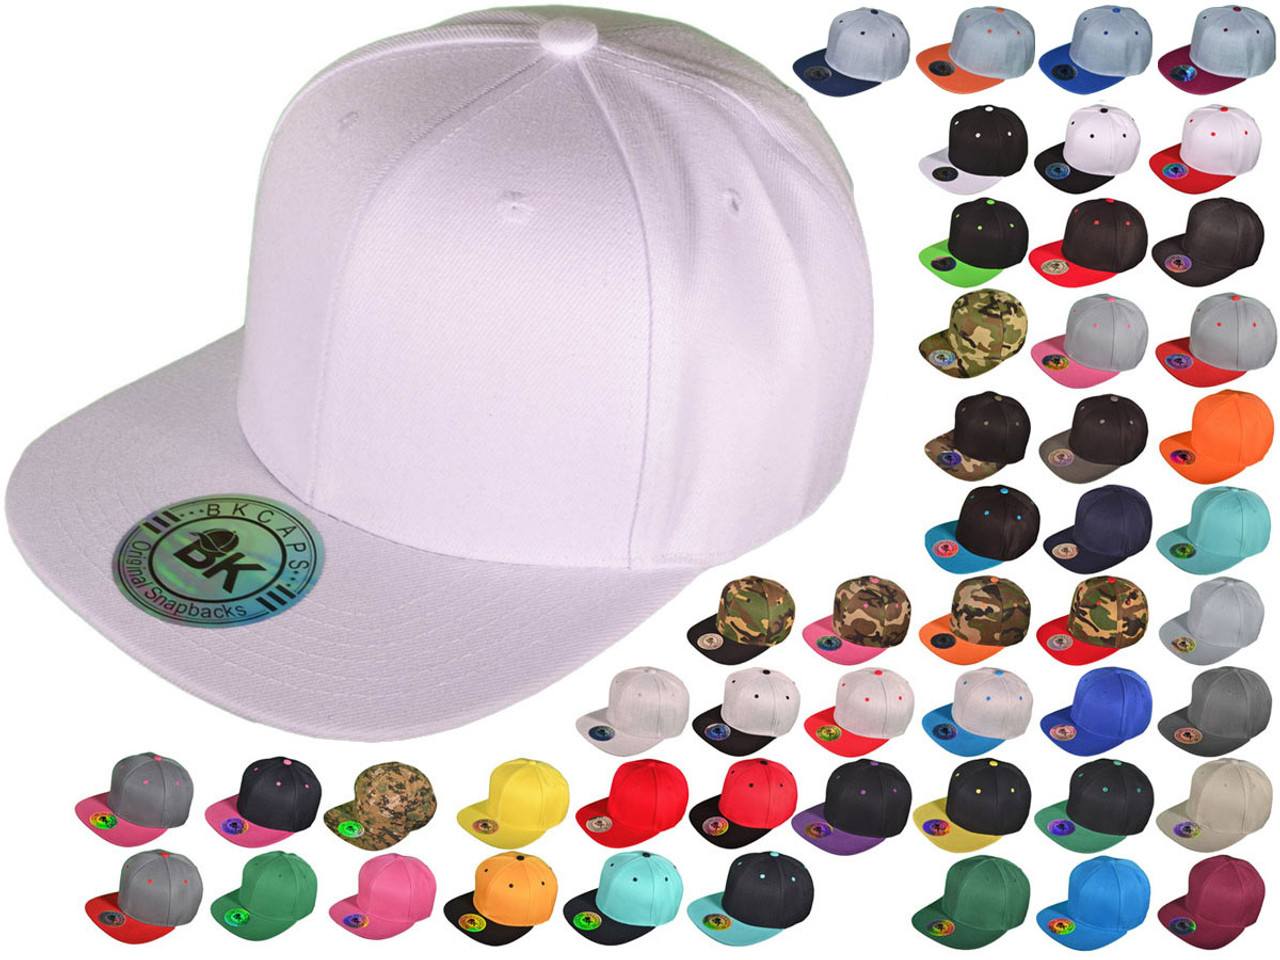 Wholesale Flat Bill Blank Plain Snapback Hats with Same Color ... 2c21d68afdd2